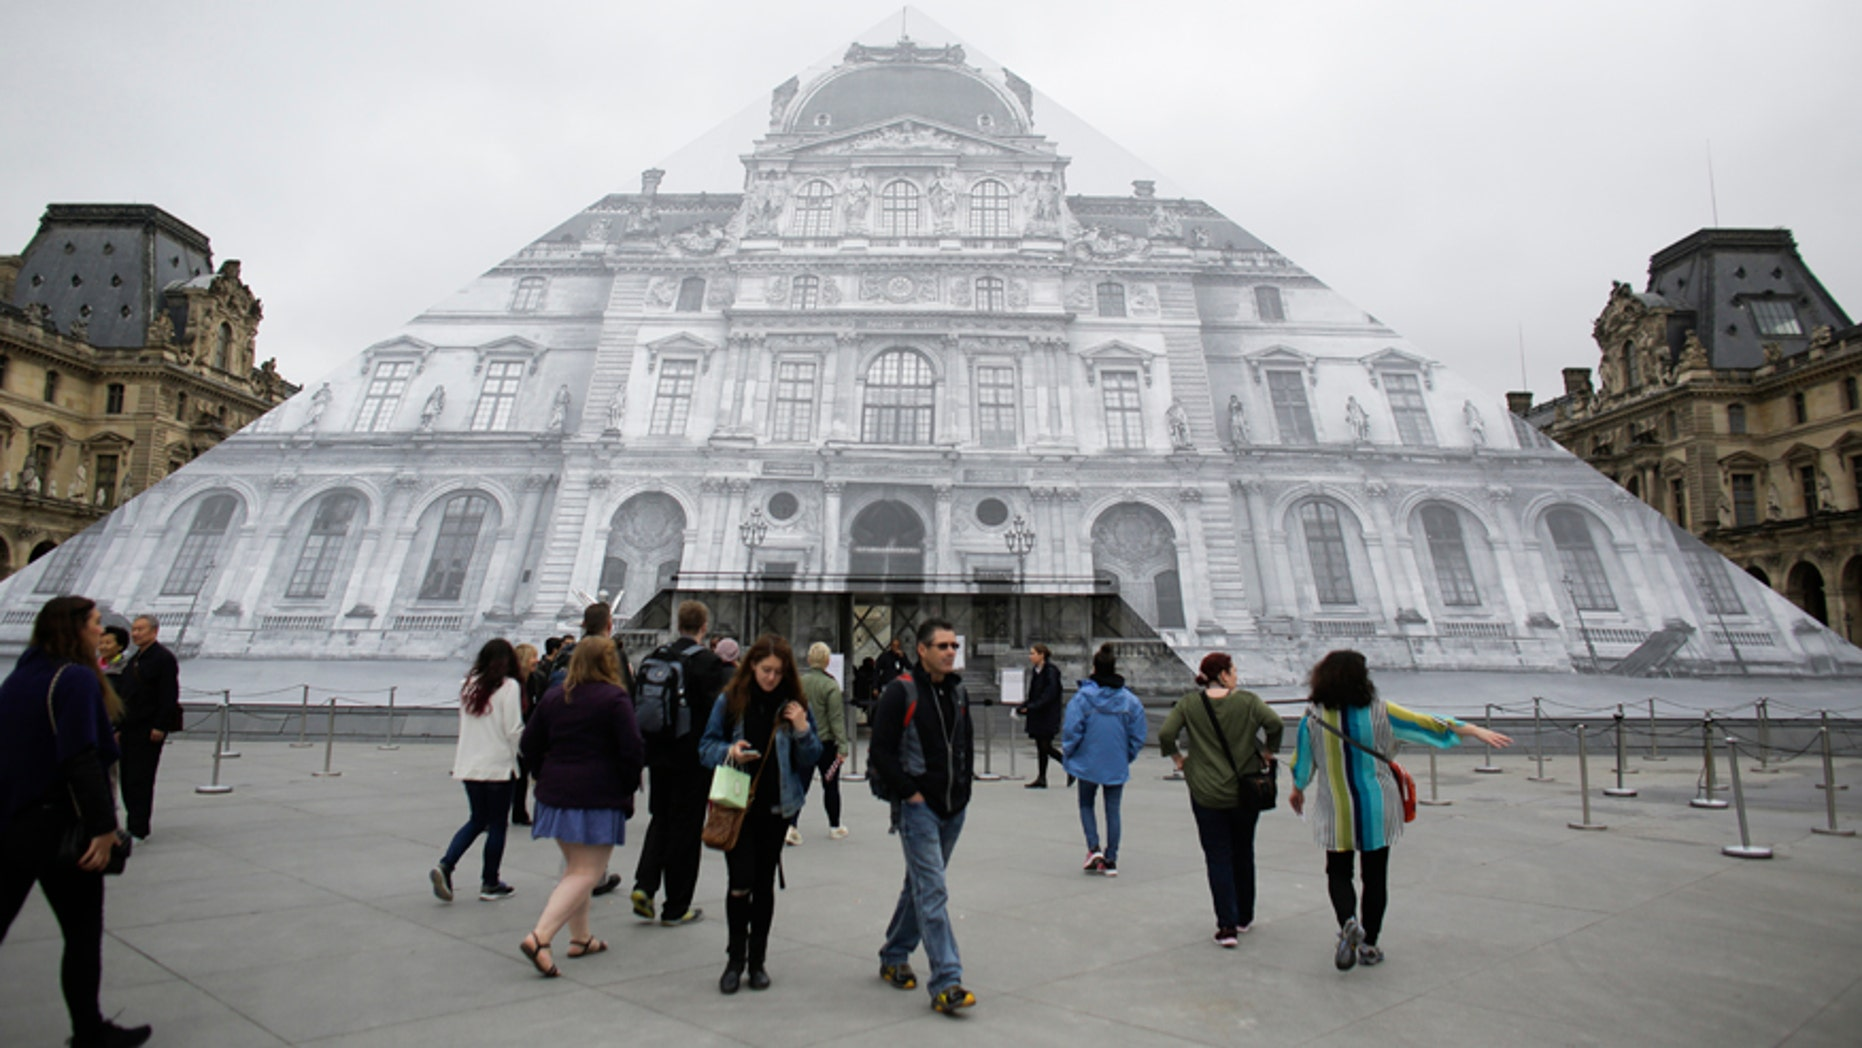 June 3, 2016: Visitors gather in front of the entrance of the Musee de Louvre which is closed and tourists being turned away, due to the unusually high water level of the nearby river Seine in Paris.